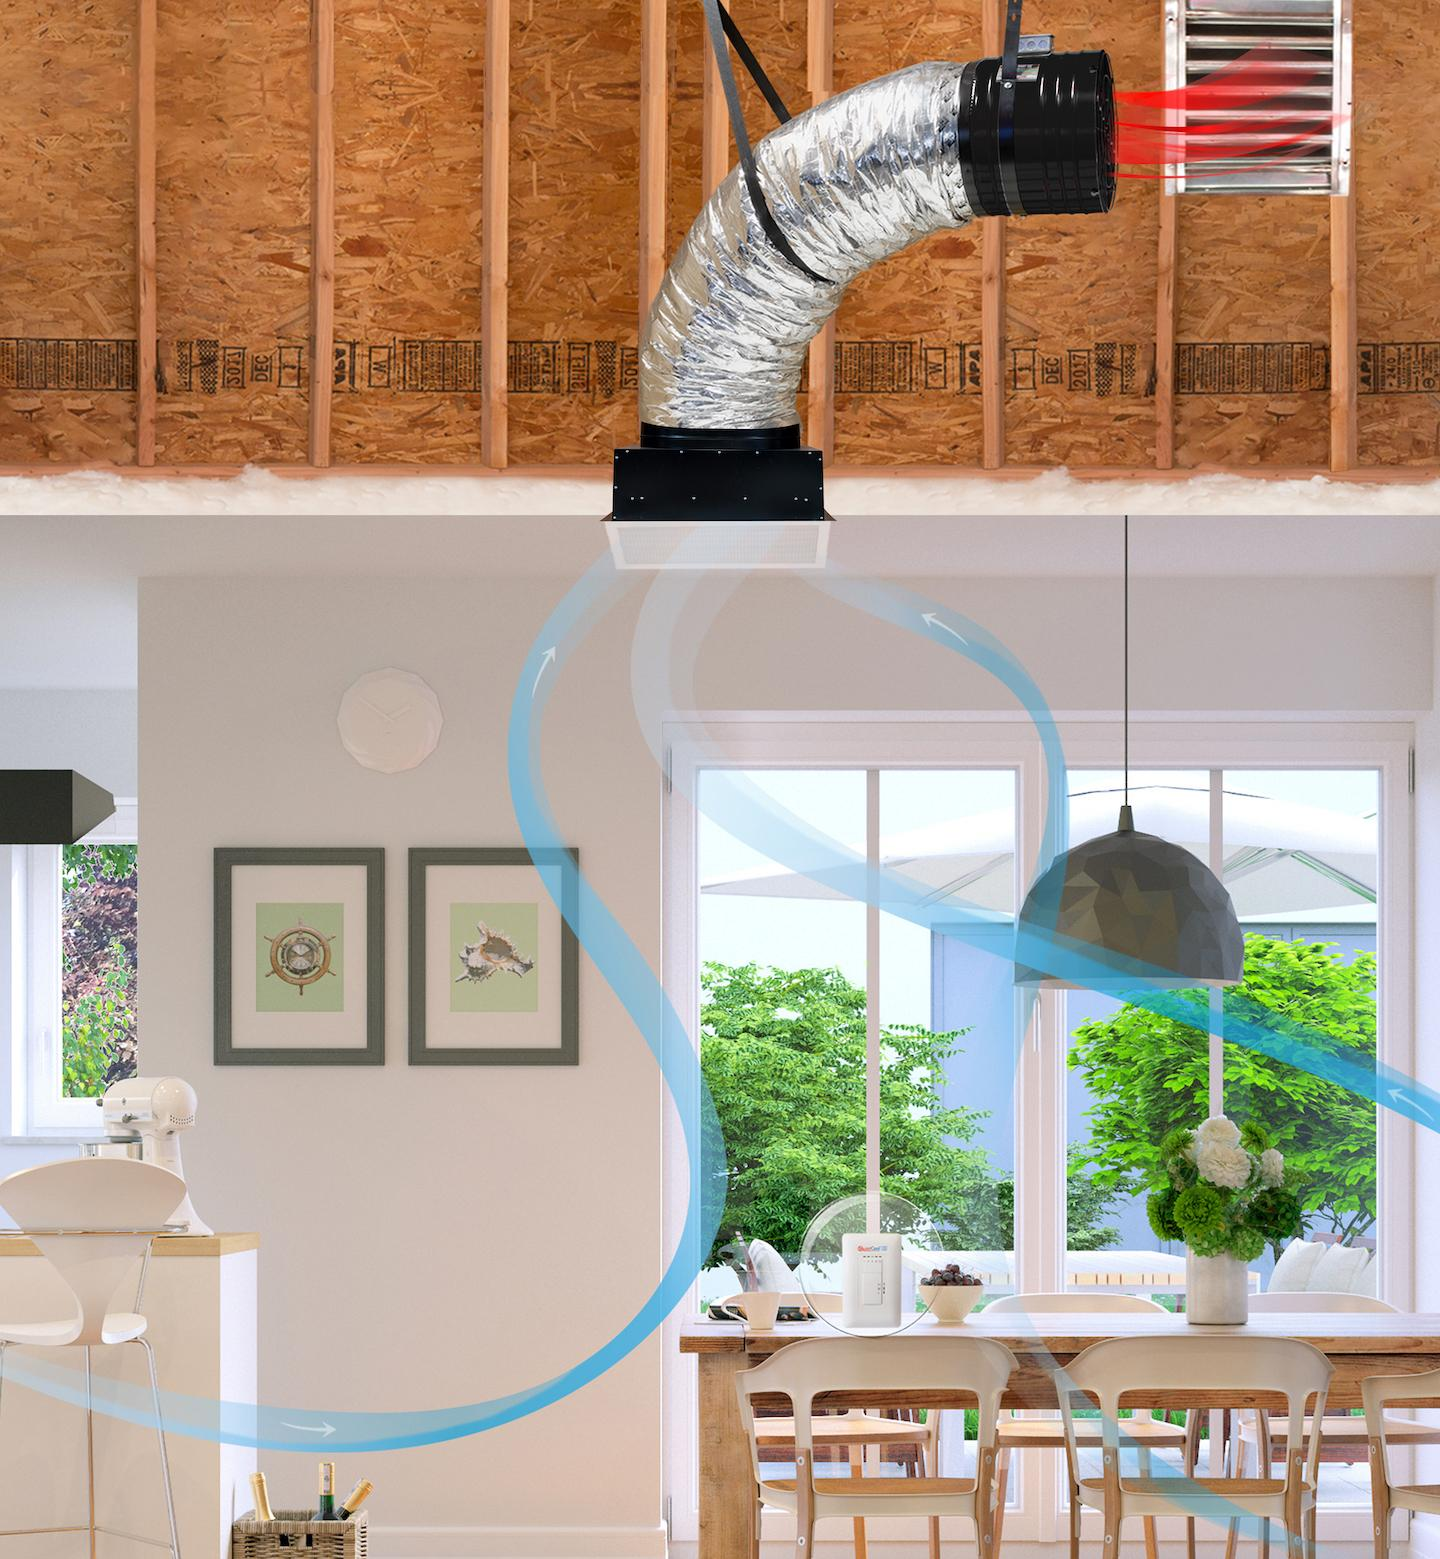 attic fans cool down the house